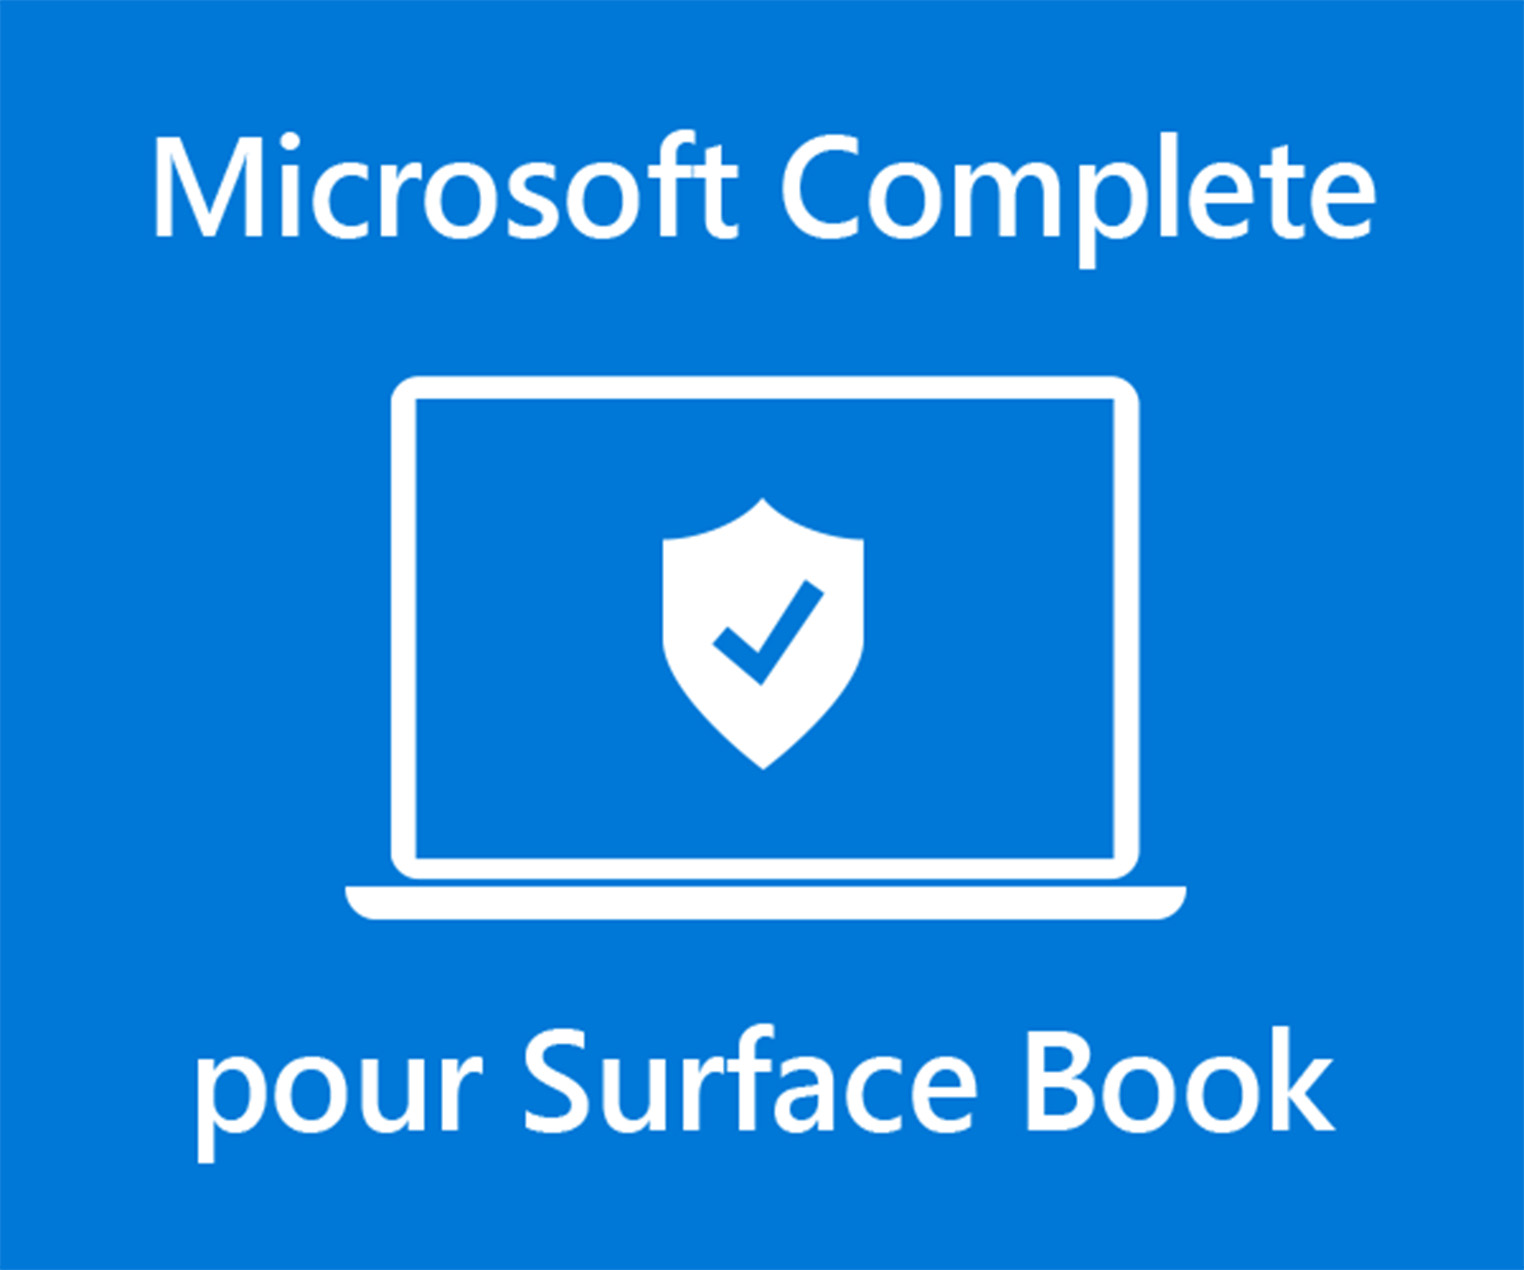 Microsoft Complete pour Surface Book